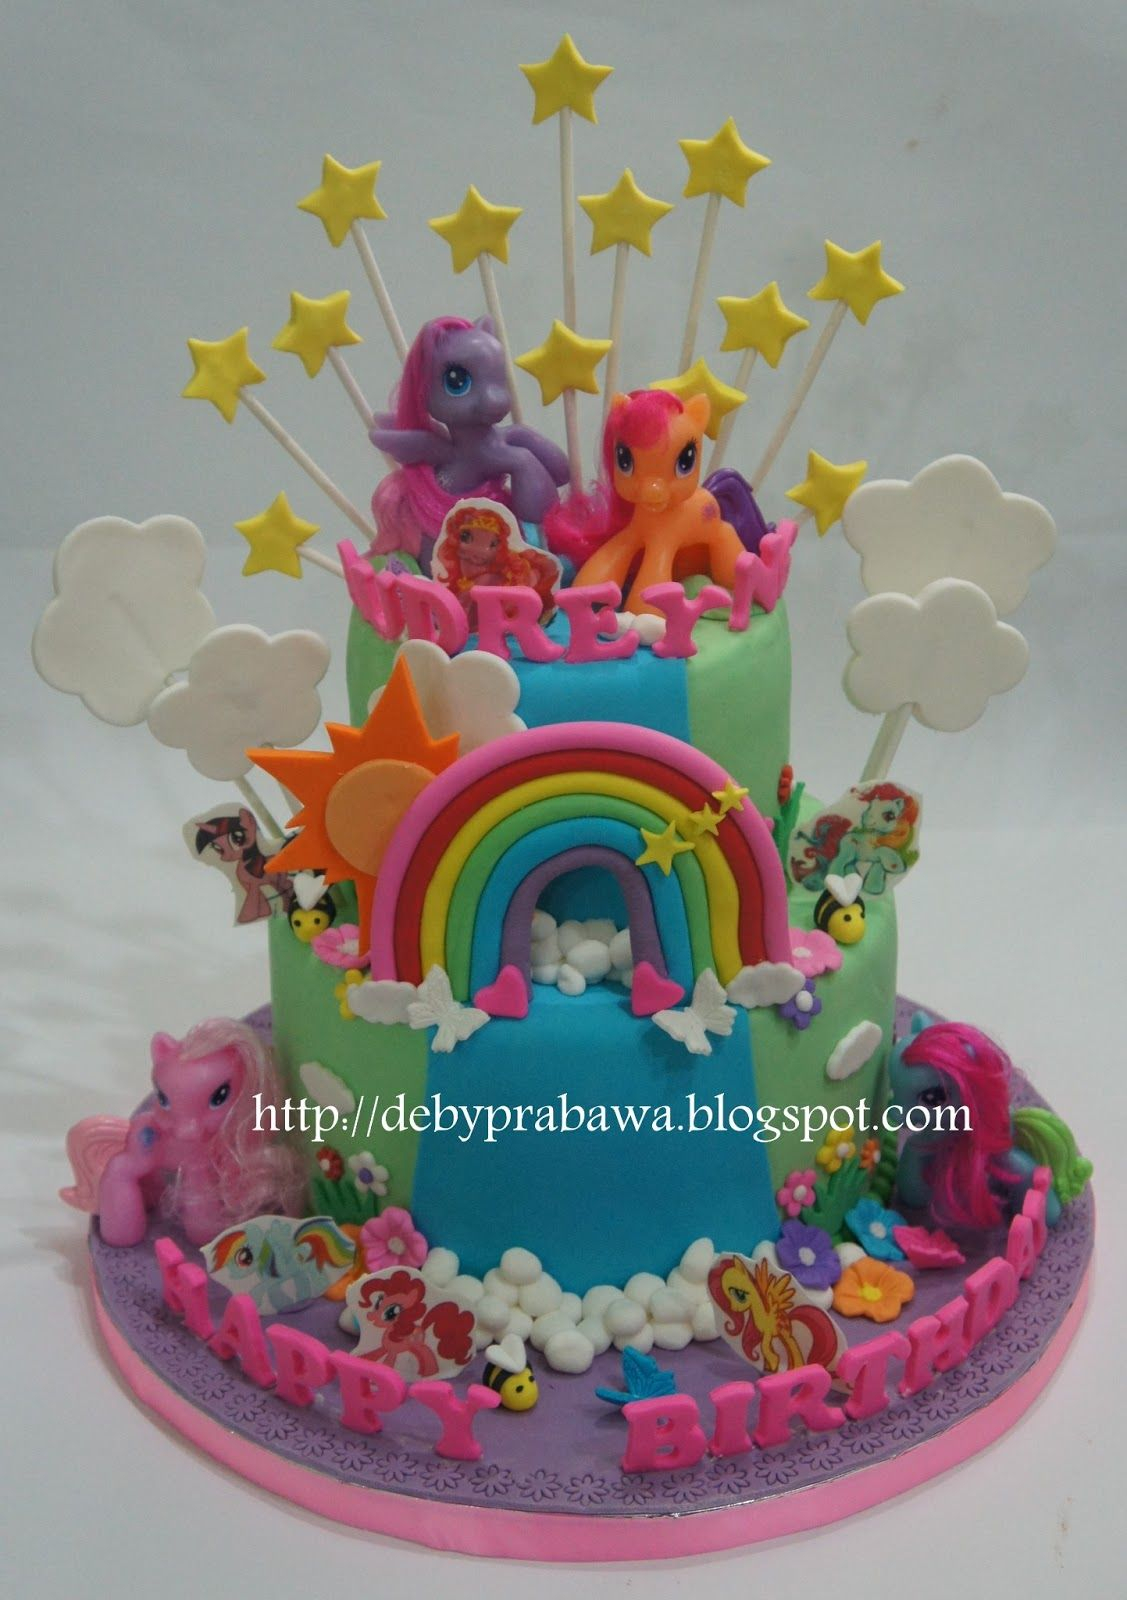 My Little Pony Birthday Cake Ideas Pin Lee Carter On Girls Cakes In 2019 Pinterest